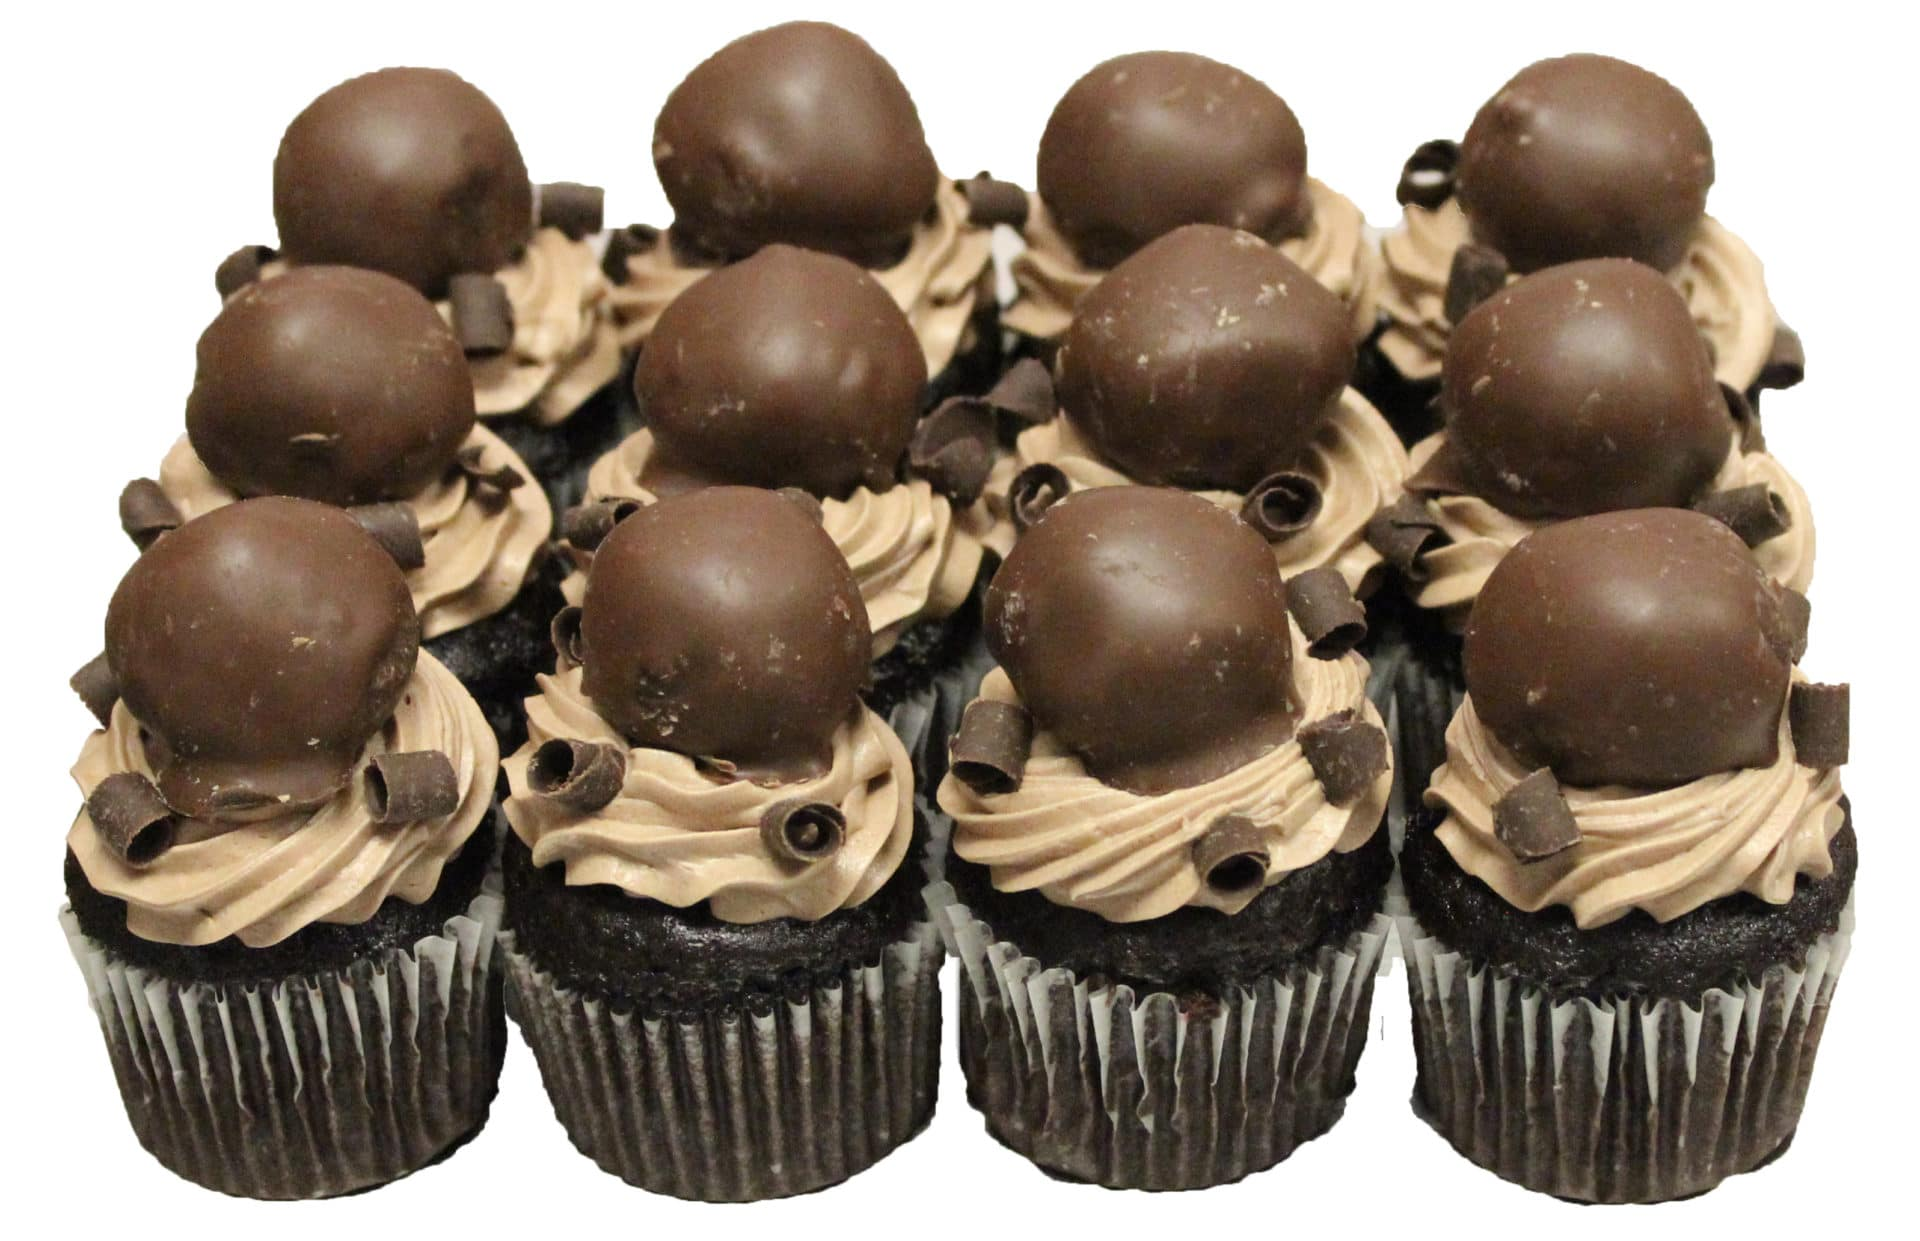 Order a cake bliss chocolate cakes - Mini Chocolate Bliss Cupcakes